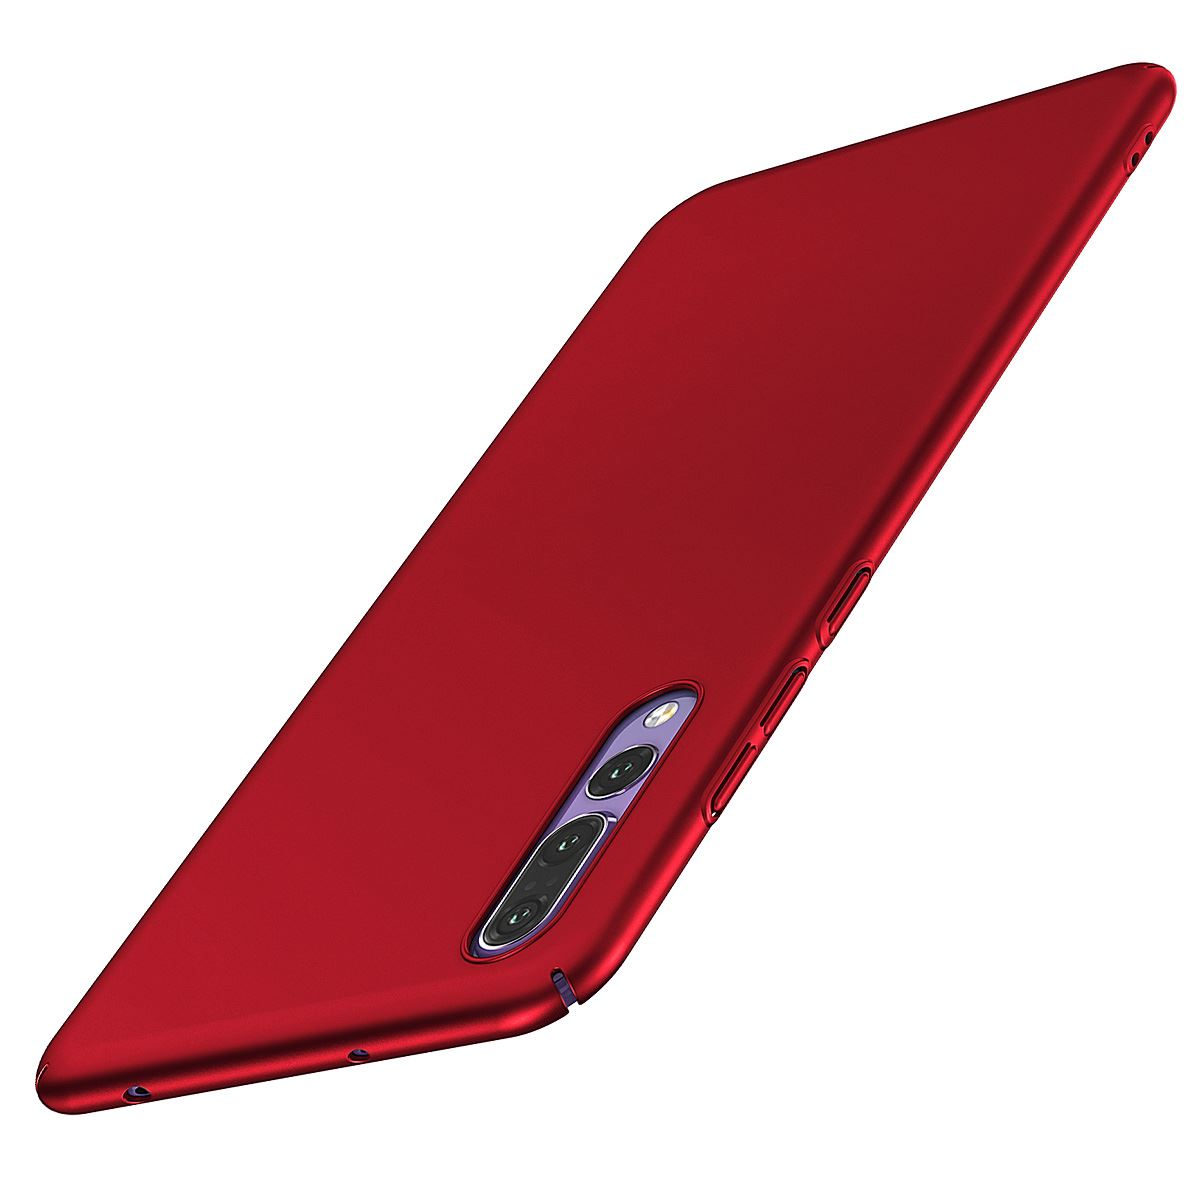 Luxury-Protective-Slim-Thin-Hard-Back-Case-Cover-For-Huawei-P20-Pro-P10-P-Smart thumbnail 30